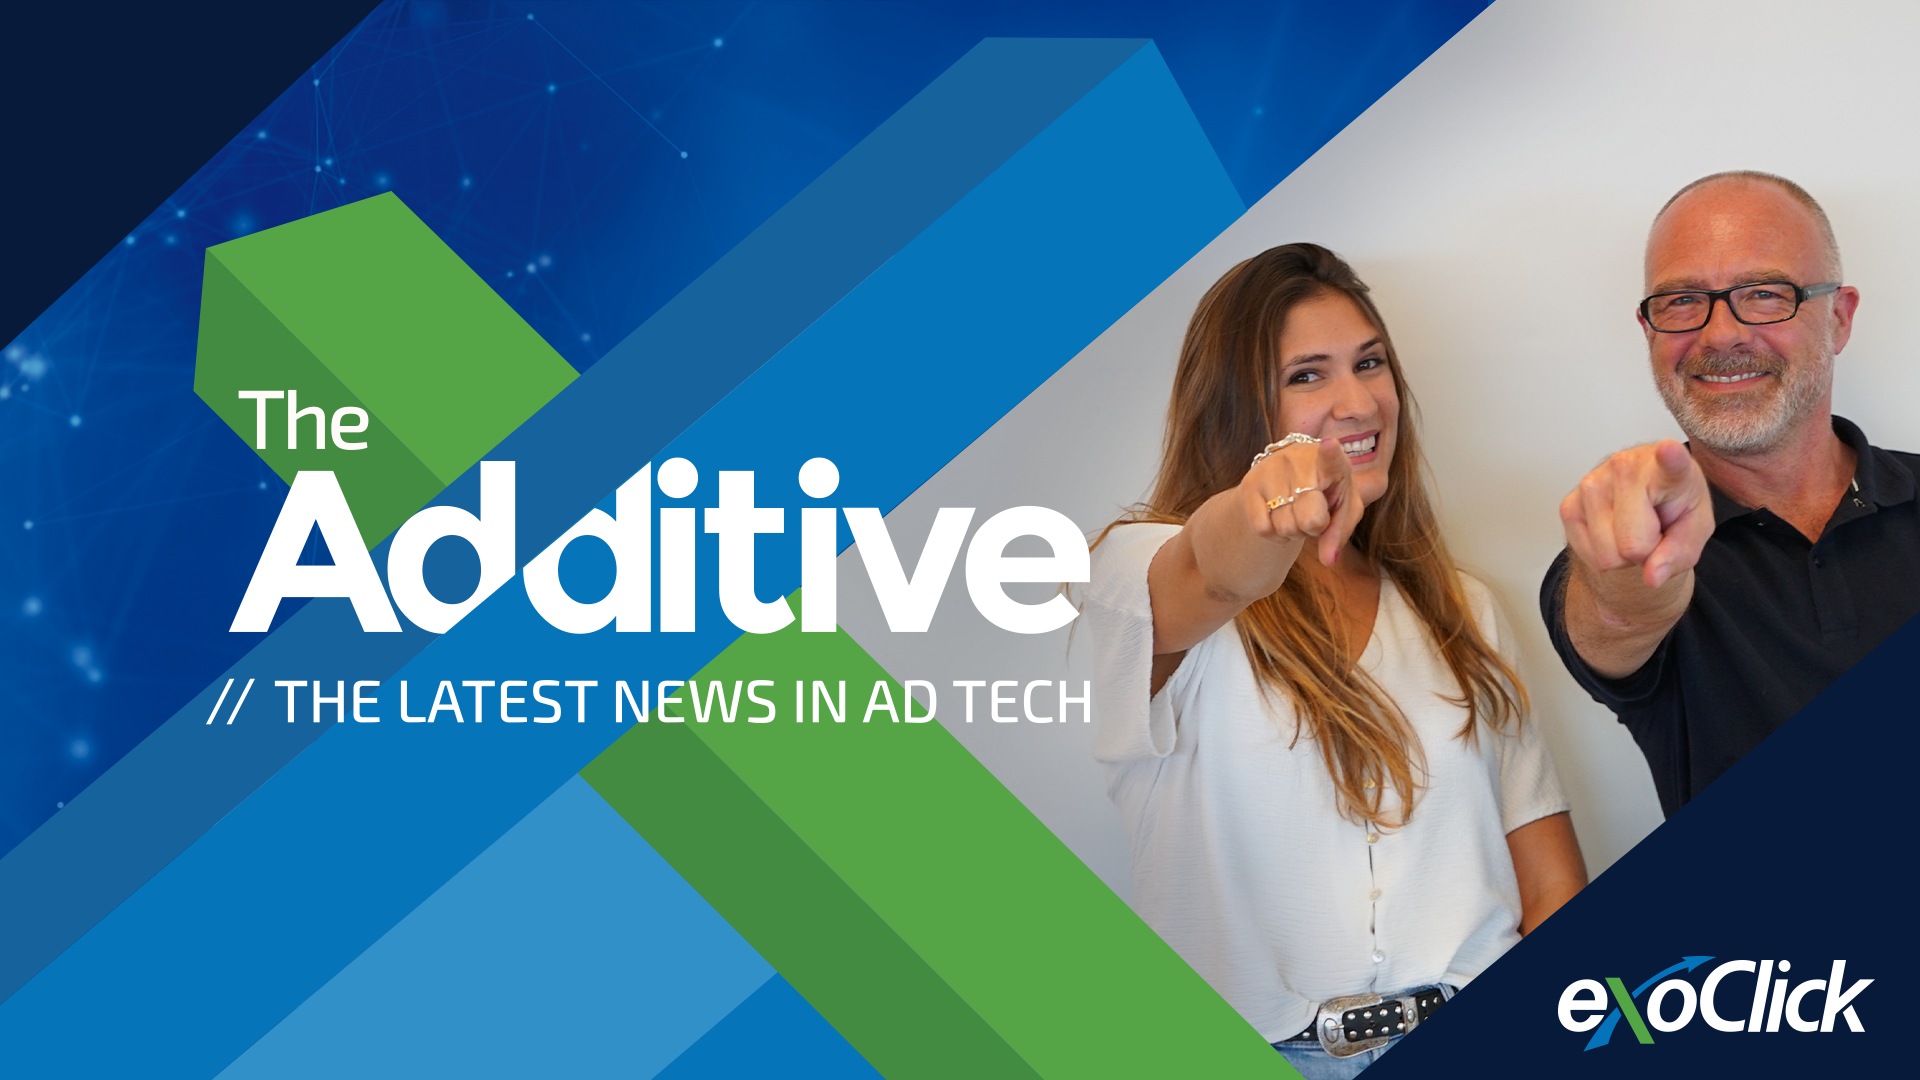 The Additive September 2019